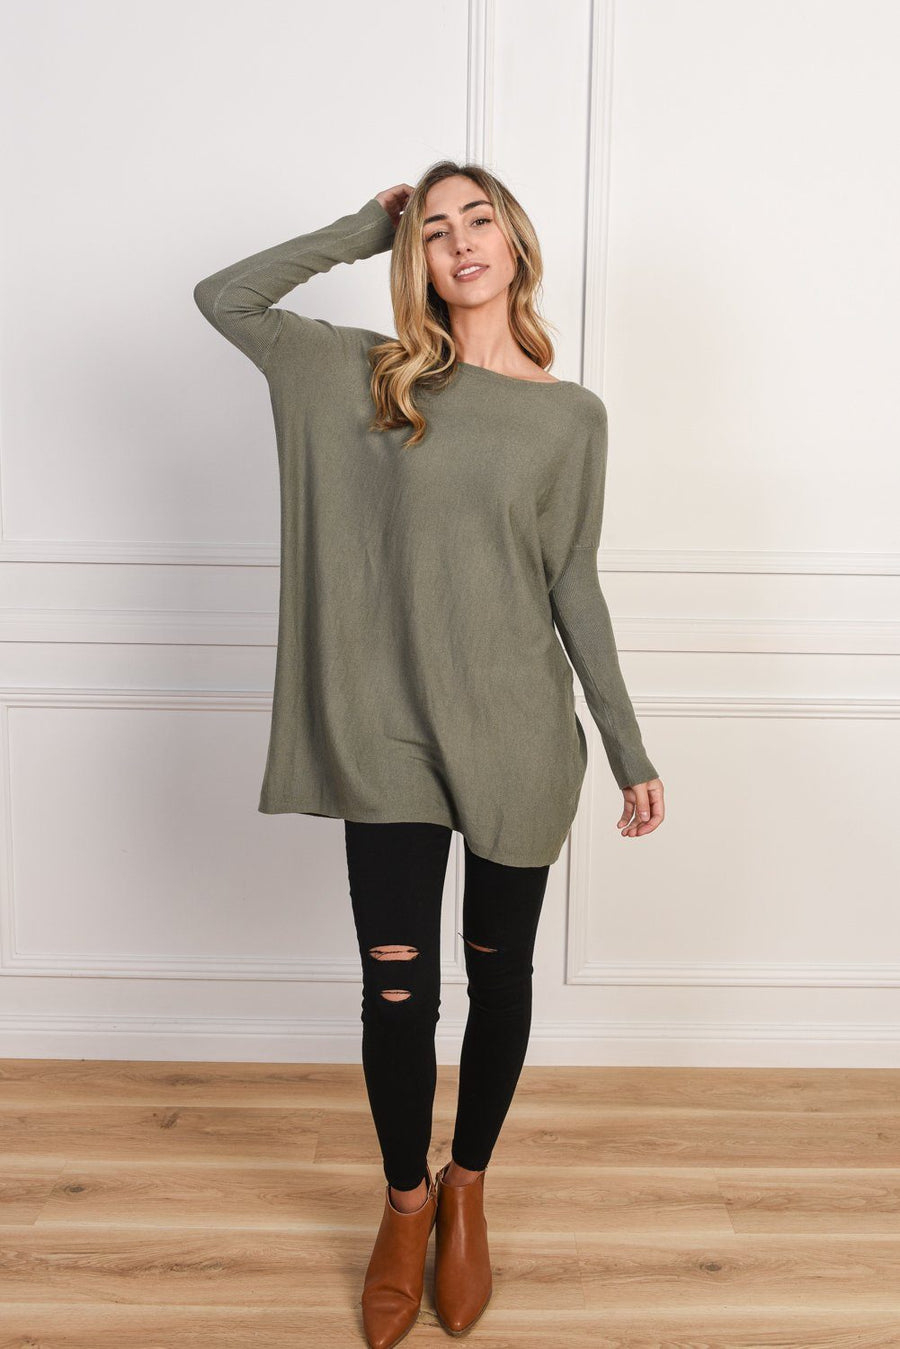 Zoe Knit | Khaki - Gray Label Knit Gray Label